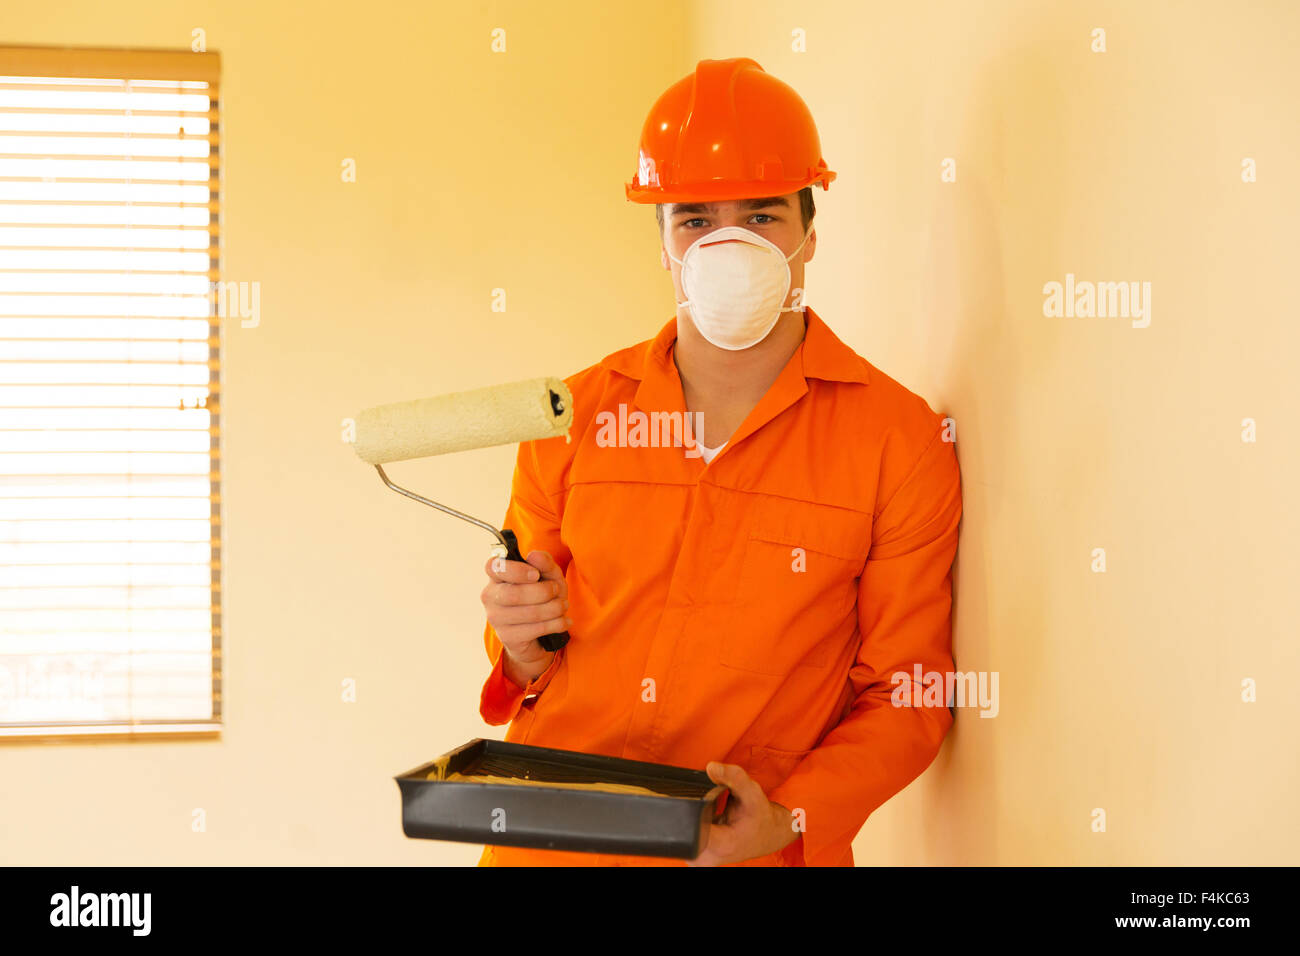 professional painter at work inside a house - Stock Image